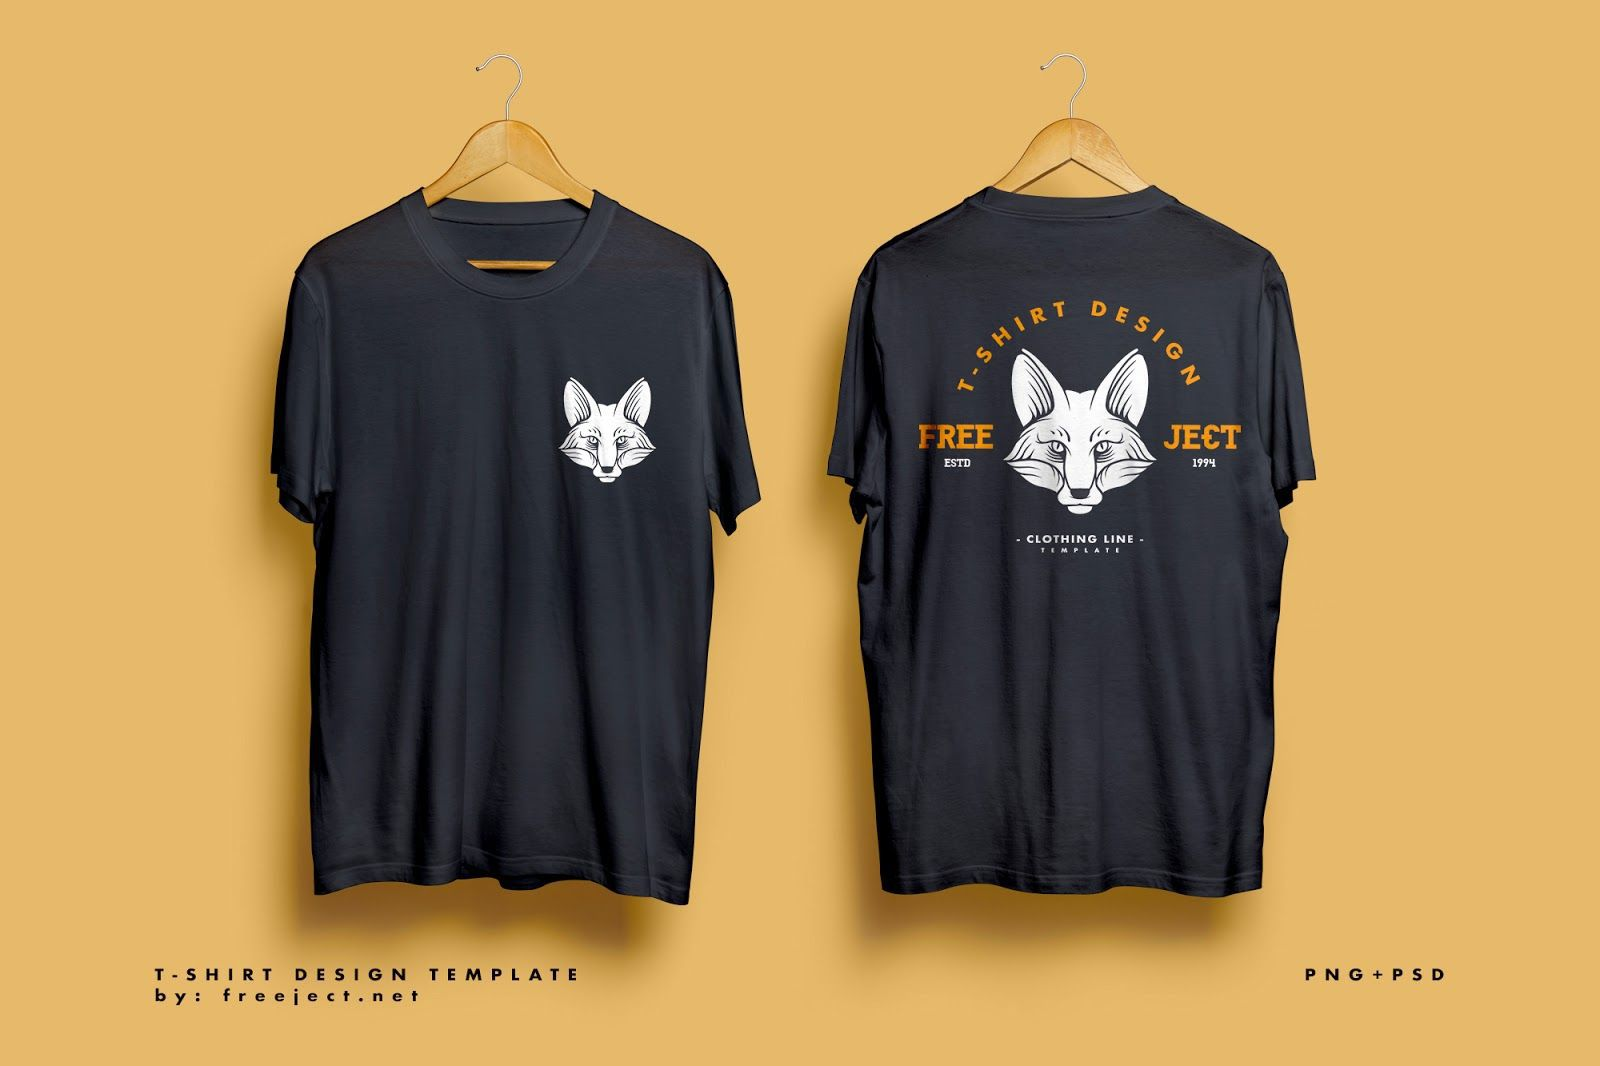 000 Breathtaking Tee Shirt Design Template Sample  Templates T Illustrator Free Download Polo PsdFull